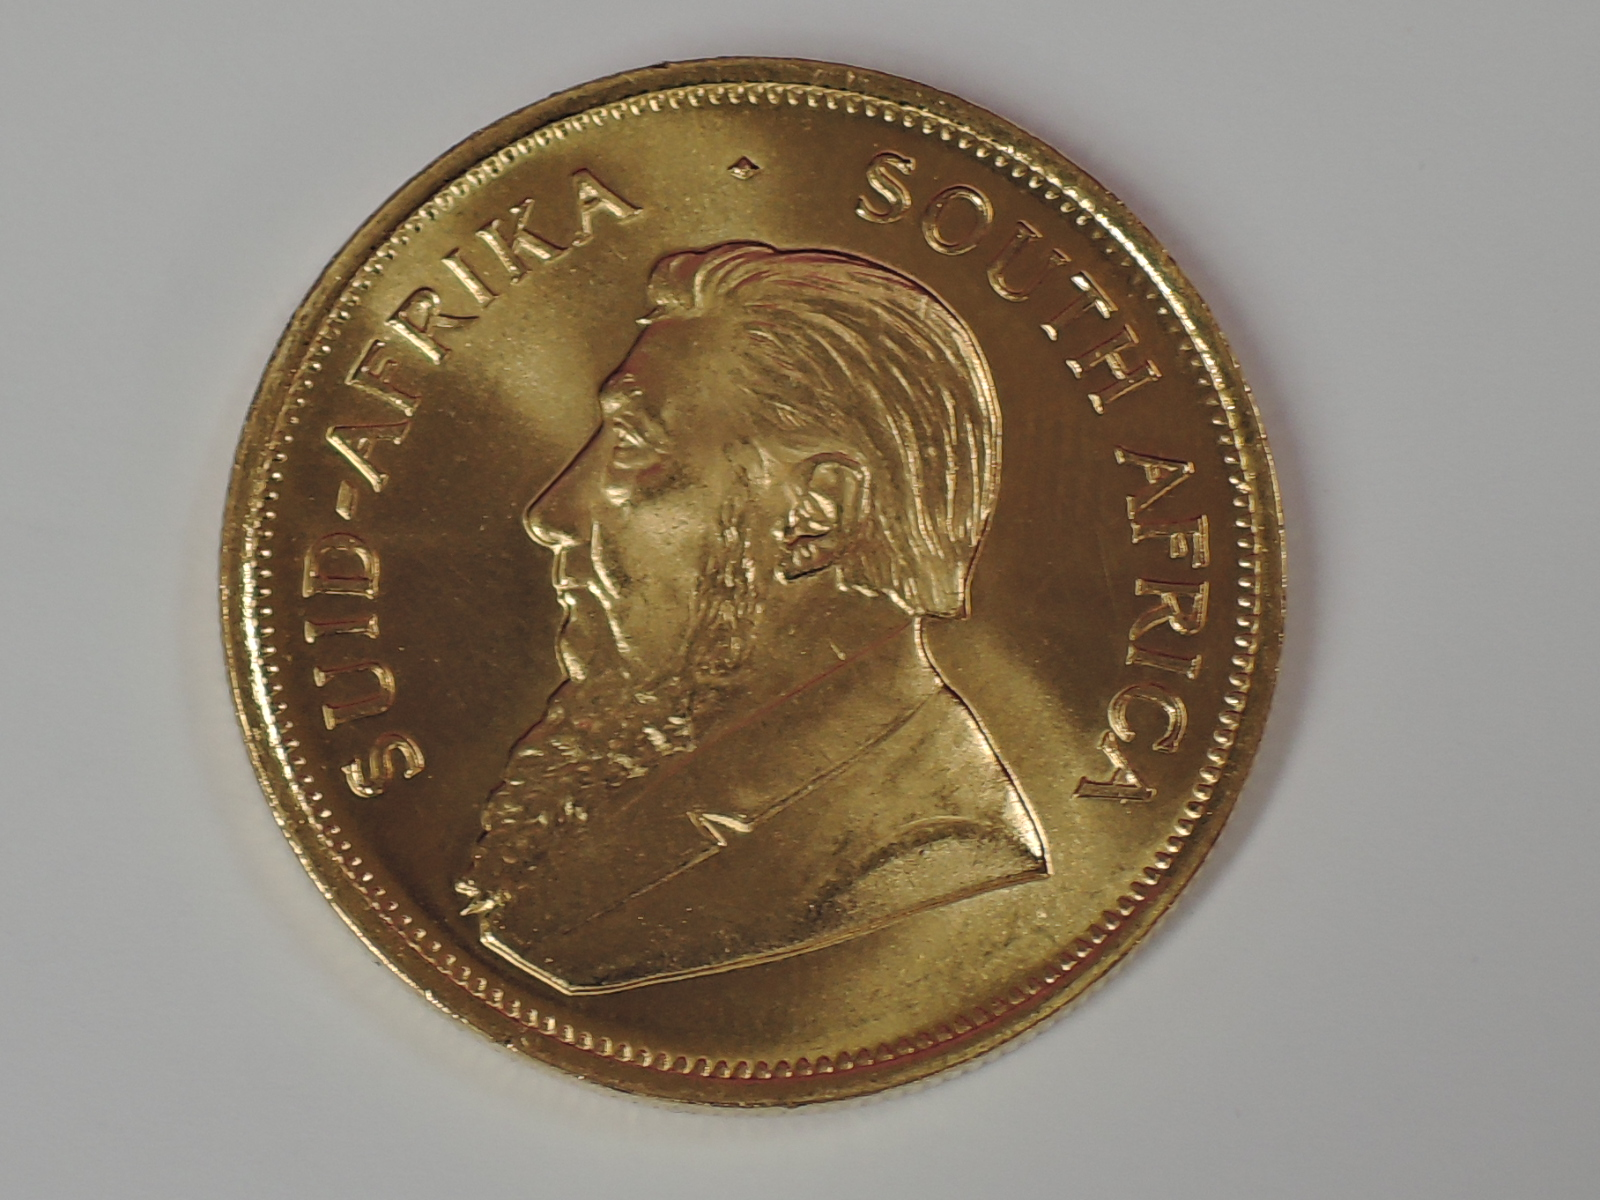 Lot 626 - A gold 1oz 1982 South African Krugerrand coin, in plastic case